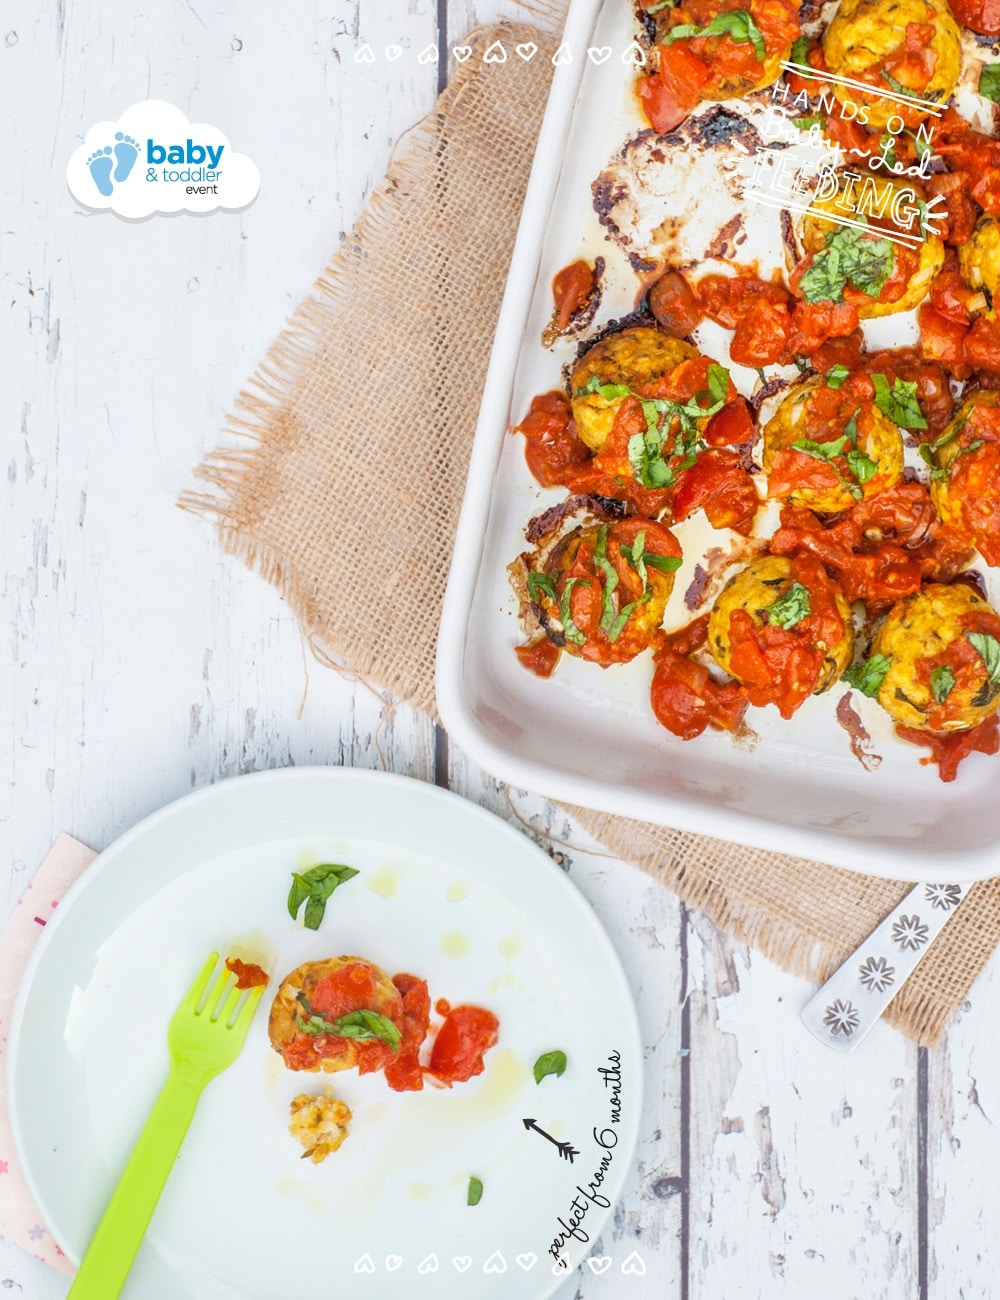 Freezer Friendly Baby Led Weaning Moroccan Turkey Meatballs